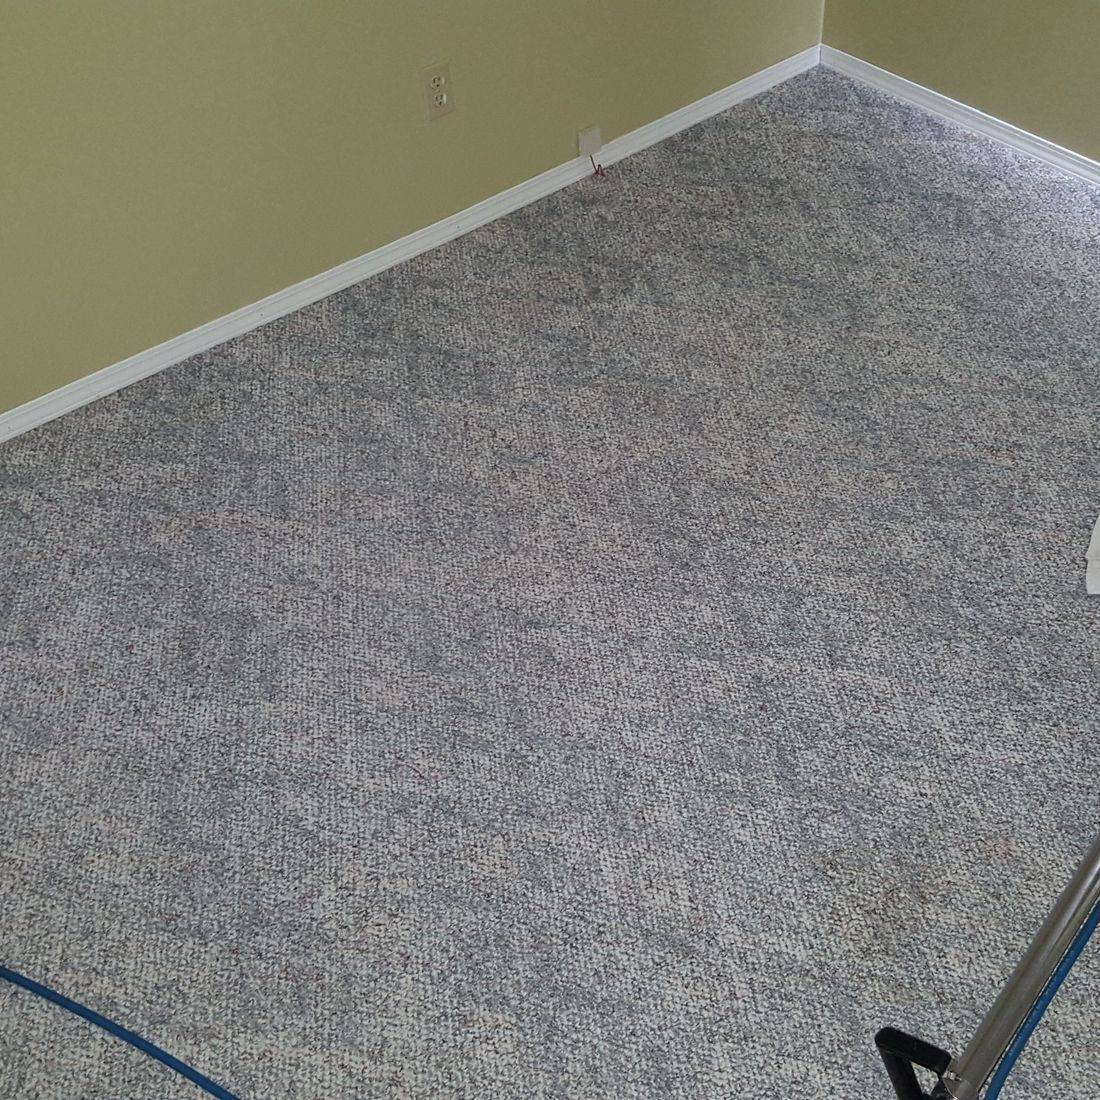 Custom Colour Carpets and Rugs, Steam Cleaning, Carpet Cleaning, Carpet Dyeing